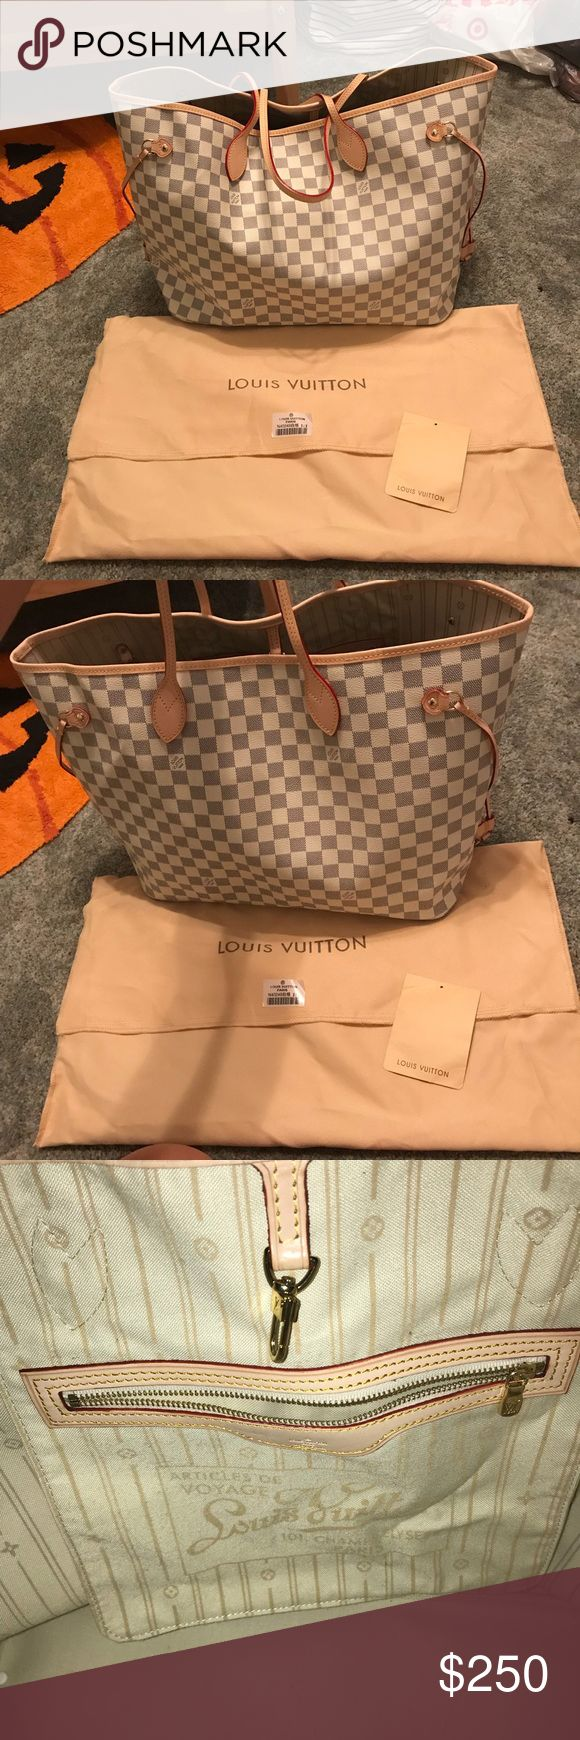 Louis Vuitton neverfull pm white damier Price reflects authenticity comes with everything shown no trades Louis Vuitton Bags Totes